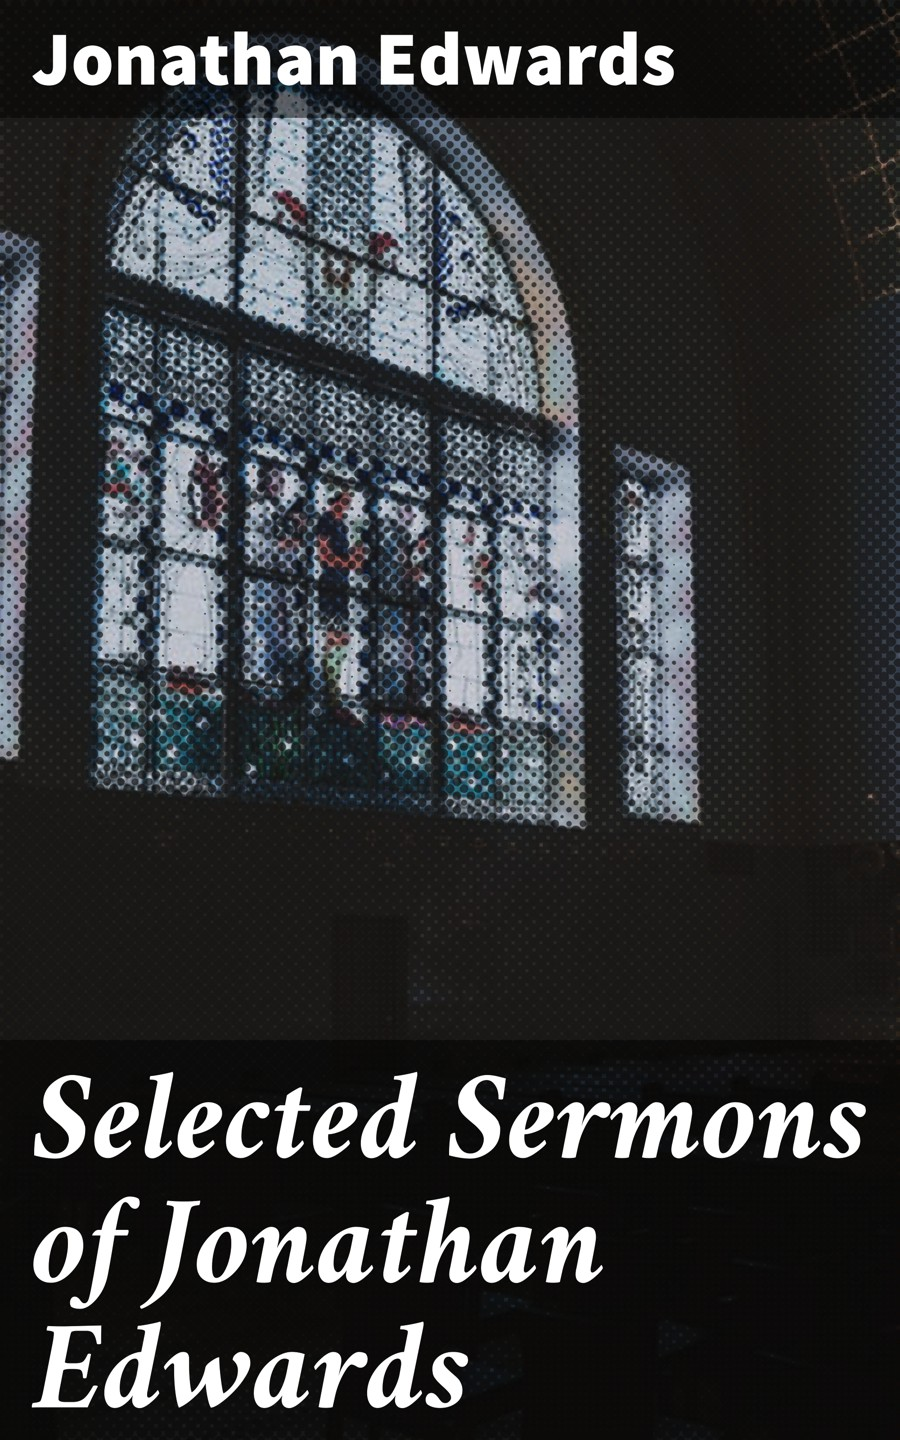 Jonathan Edwards Selected Sermons of Jonathan Edwards